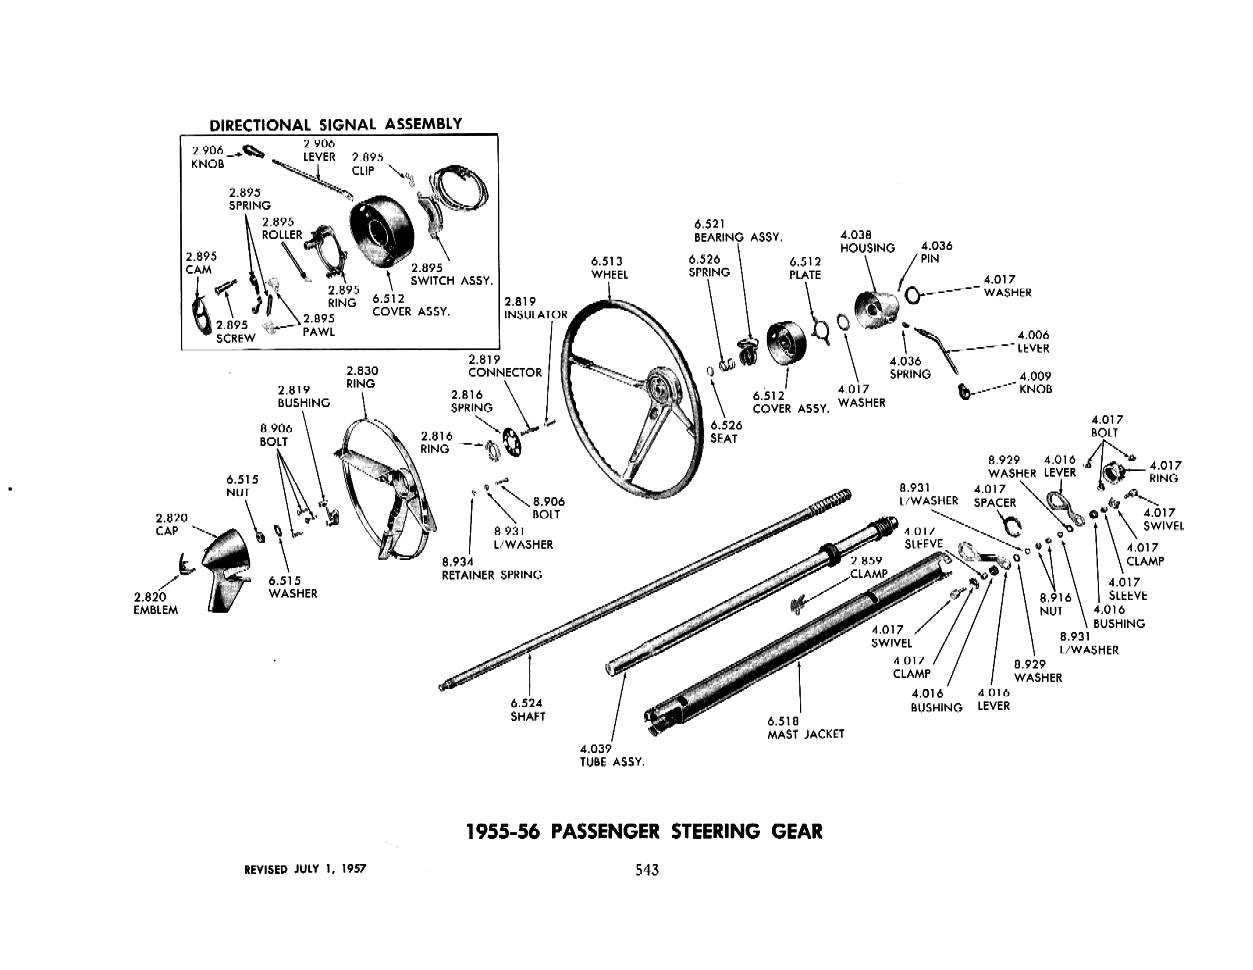 Gm steering column diagram 1998 ford mustang gt wiring diagram at ww5 sssssssssssssssssddddsssssssssssss